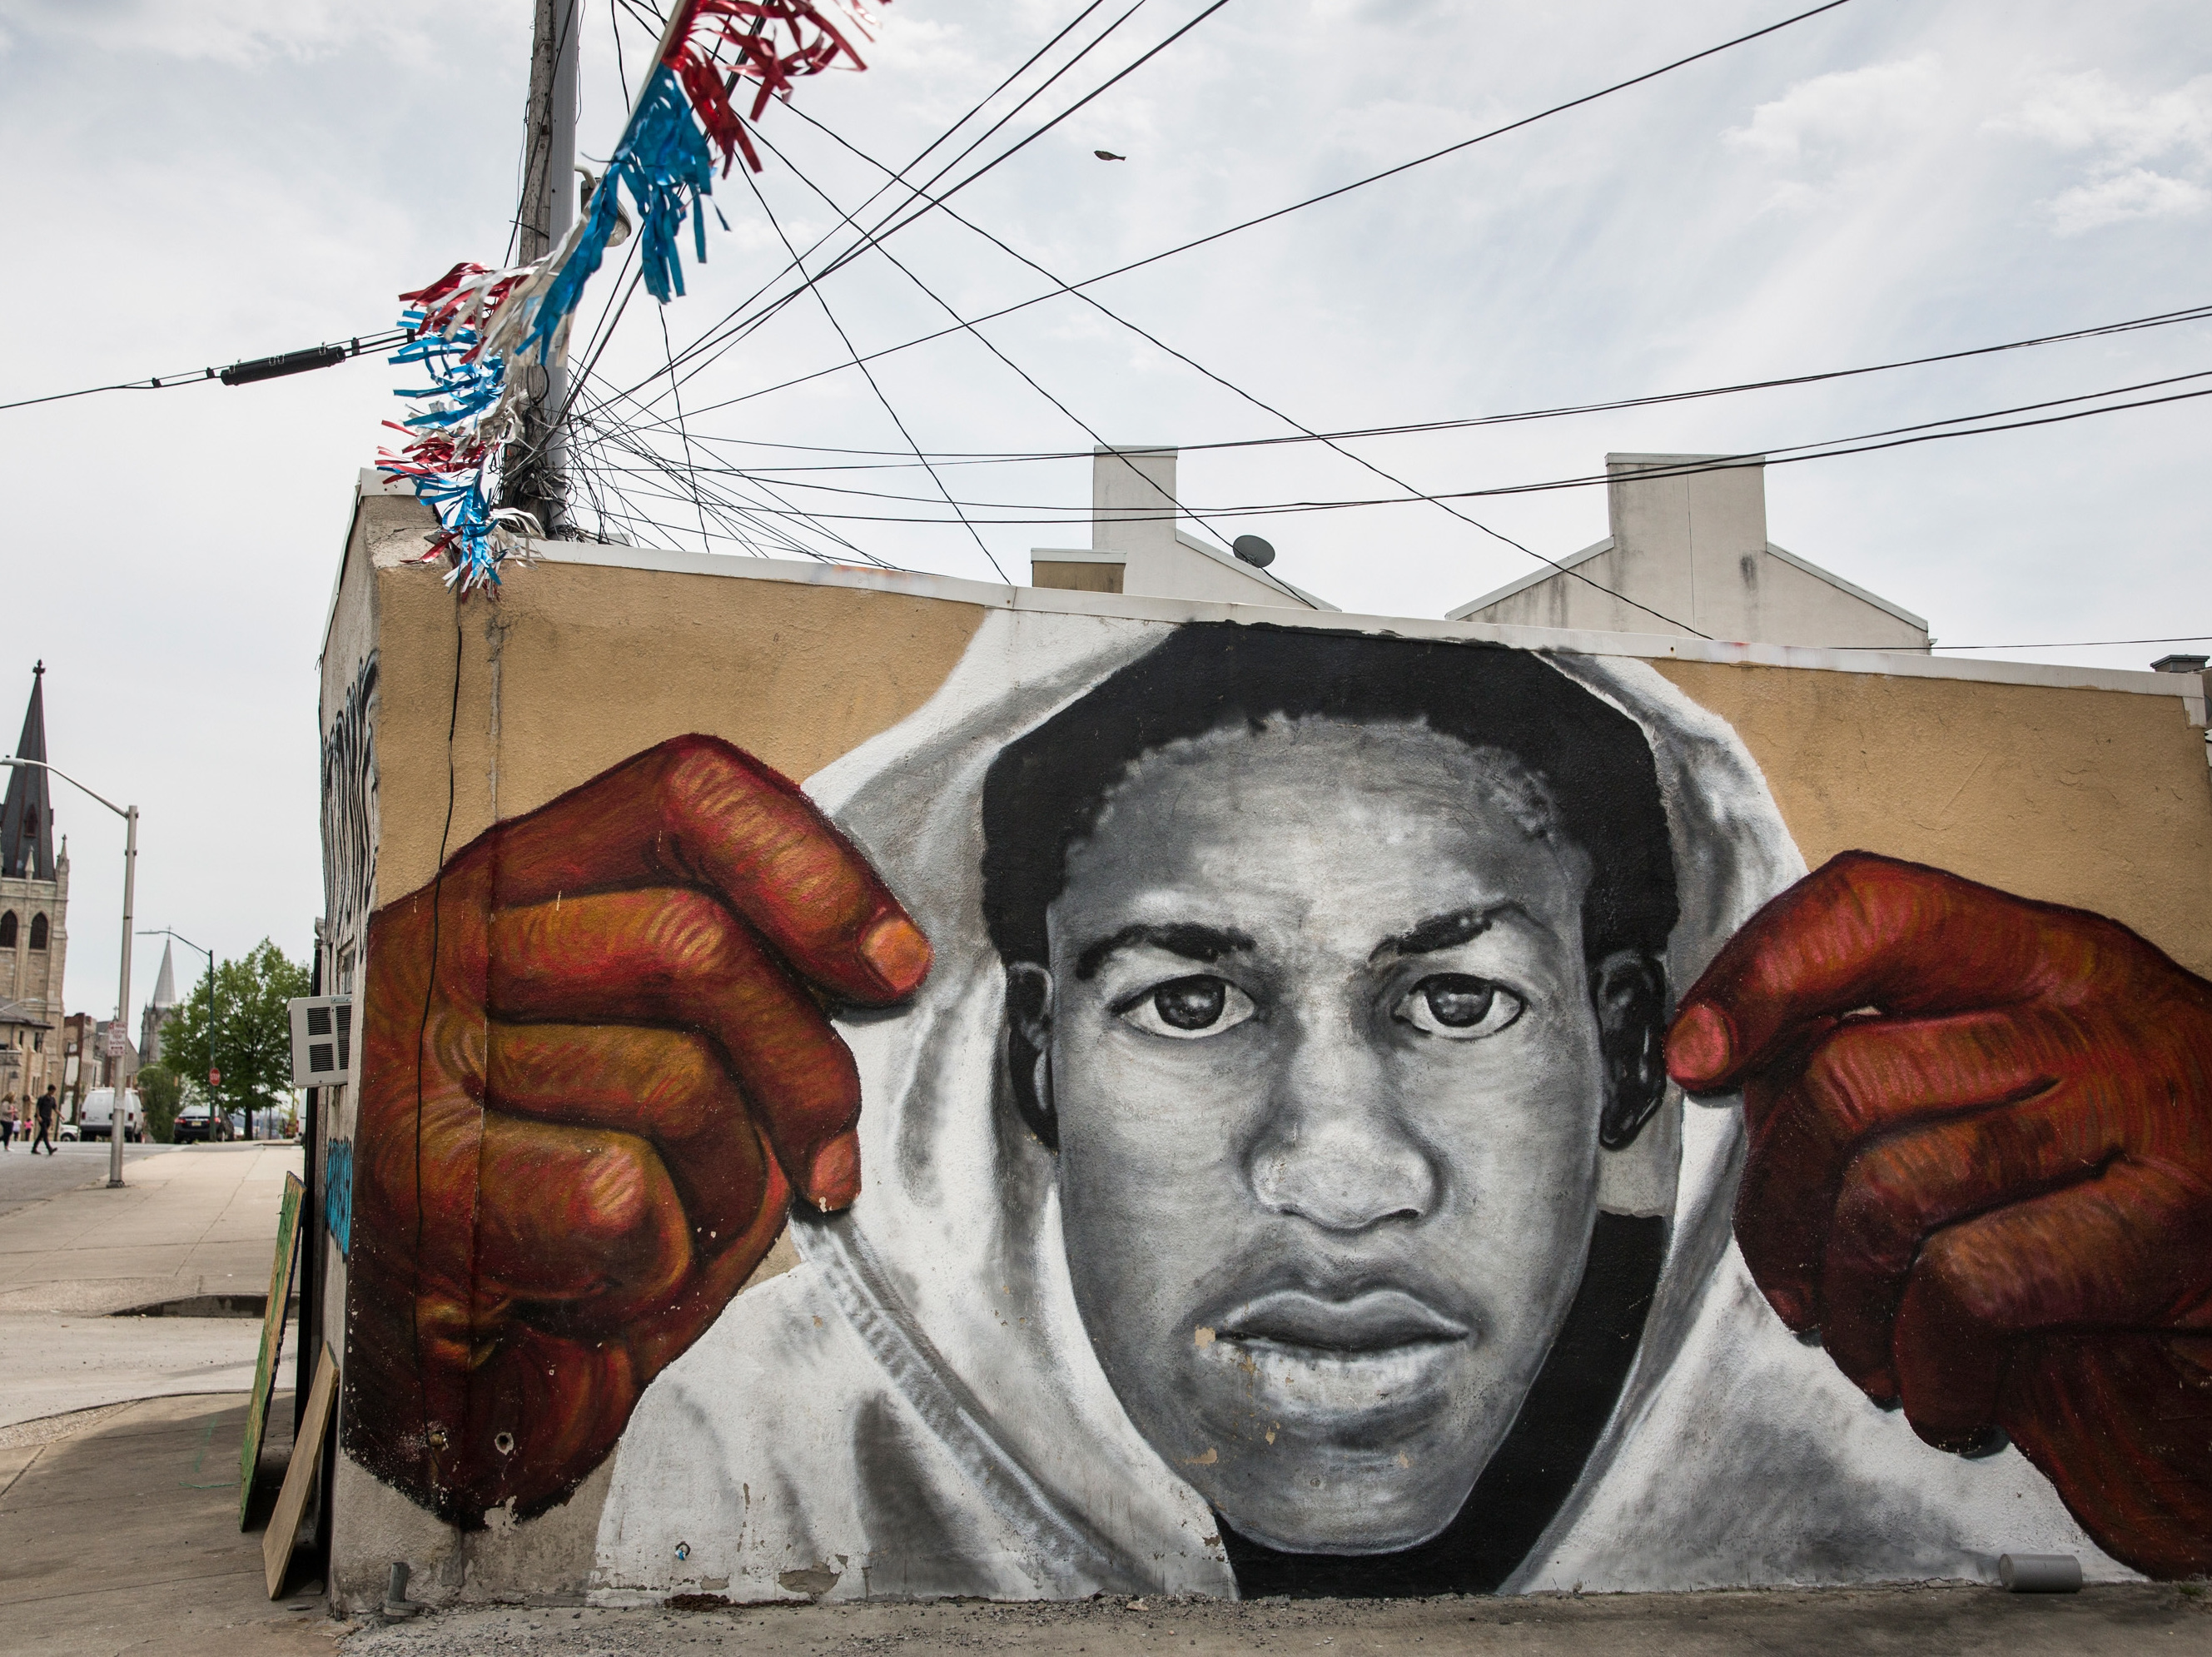 A Look Back At Trayvon Martin's Death, And The Movement It Inspired